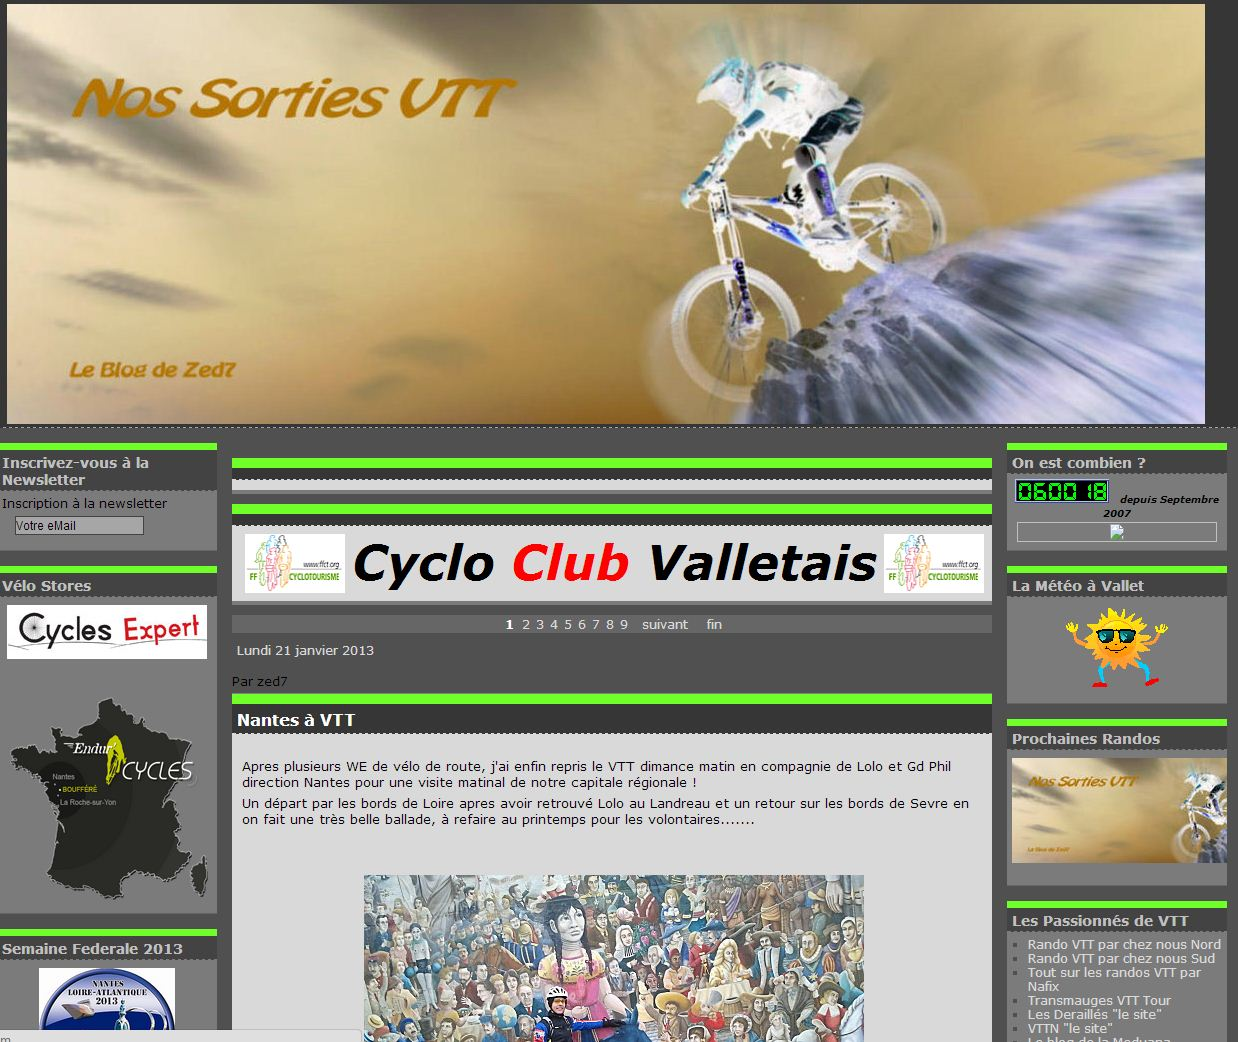 Cyclo Club Valletais